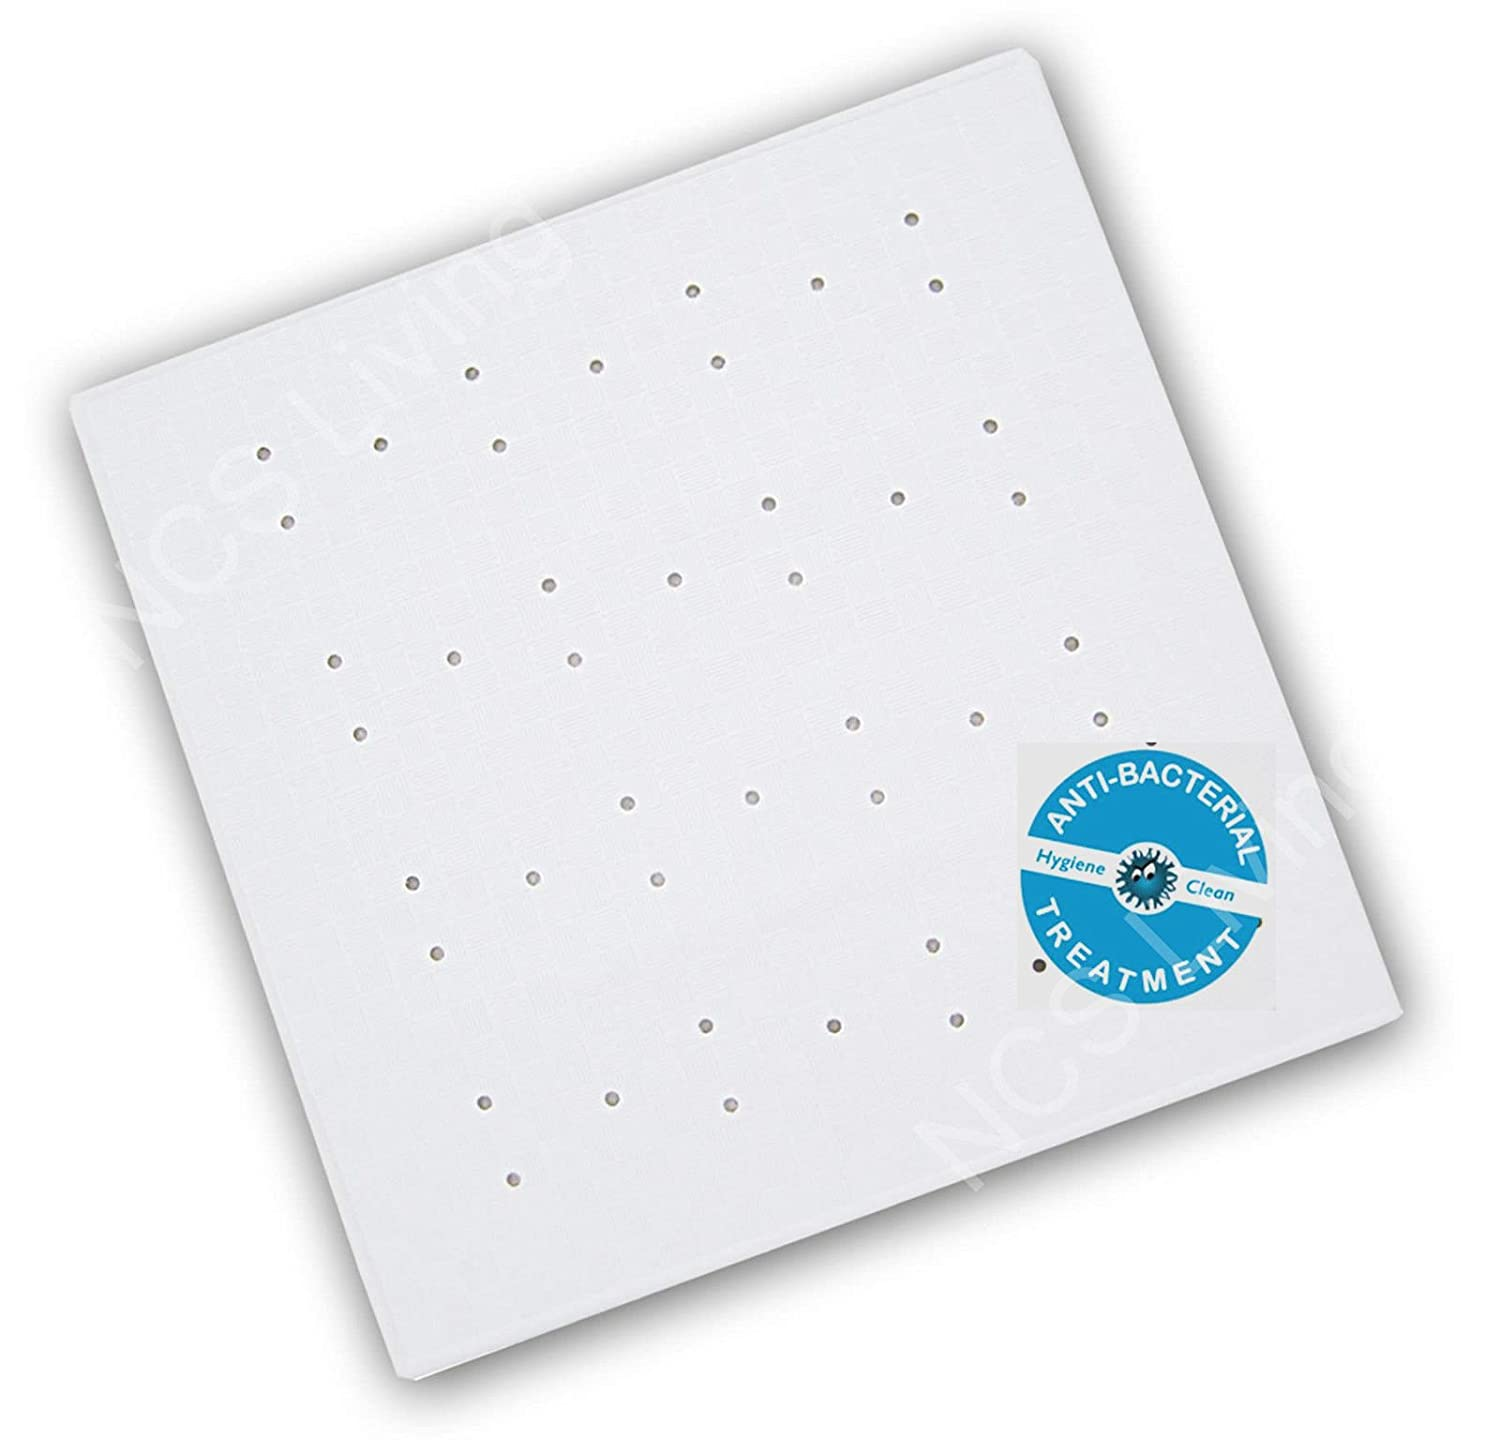 Anti Bacterial Strong Non Slip Shower Rubber Mat Anti Mould With Suction Cups 54 x 54cm NCS